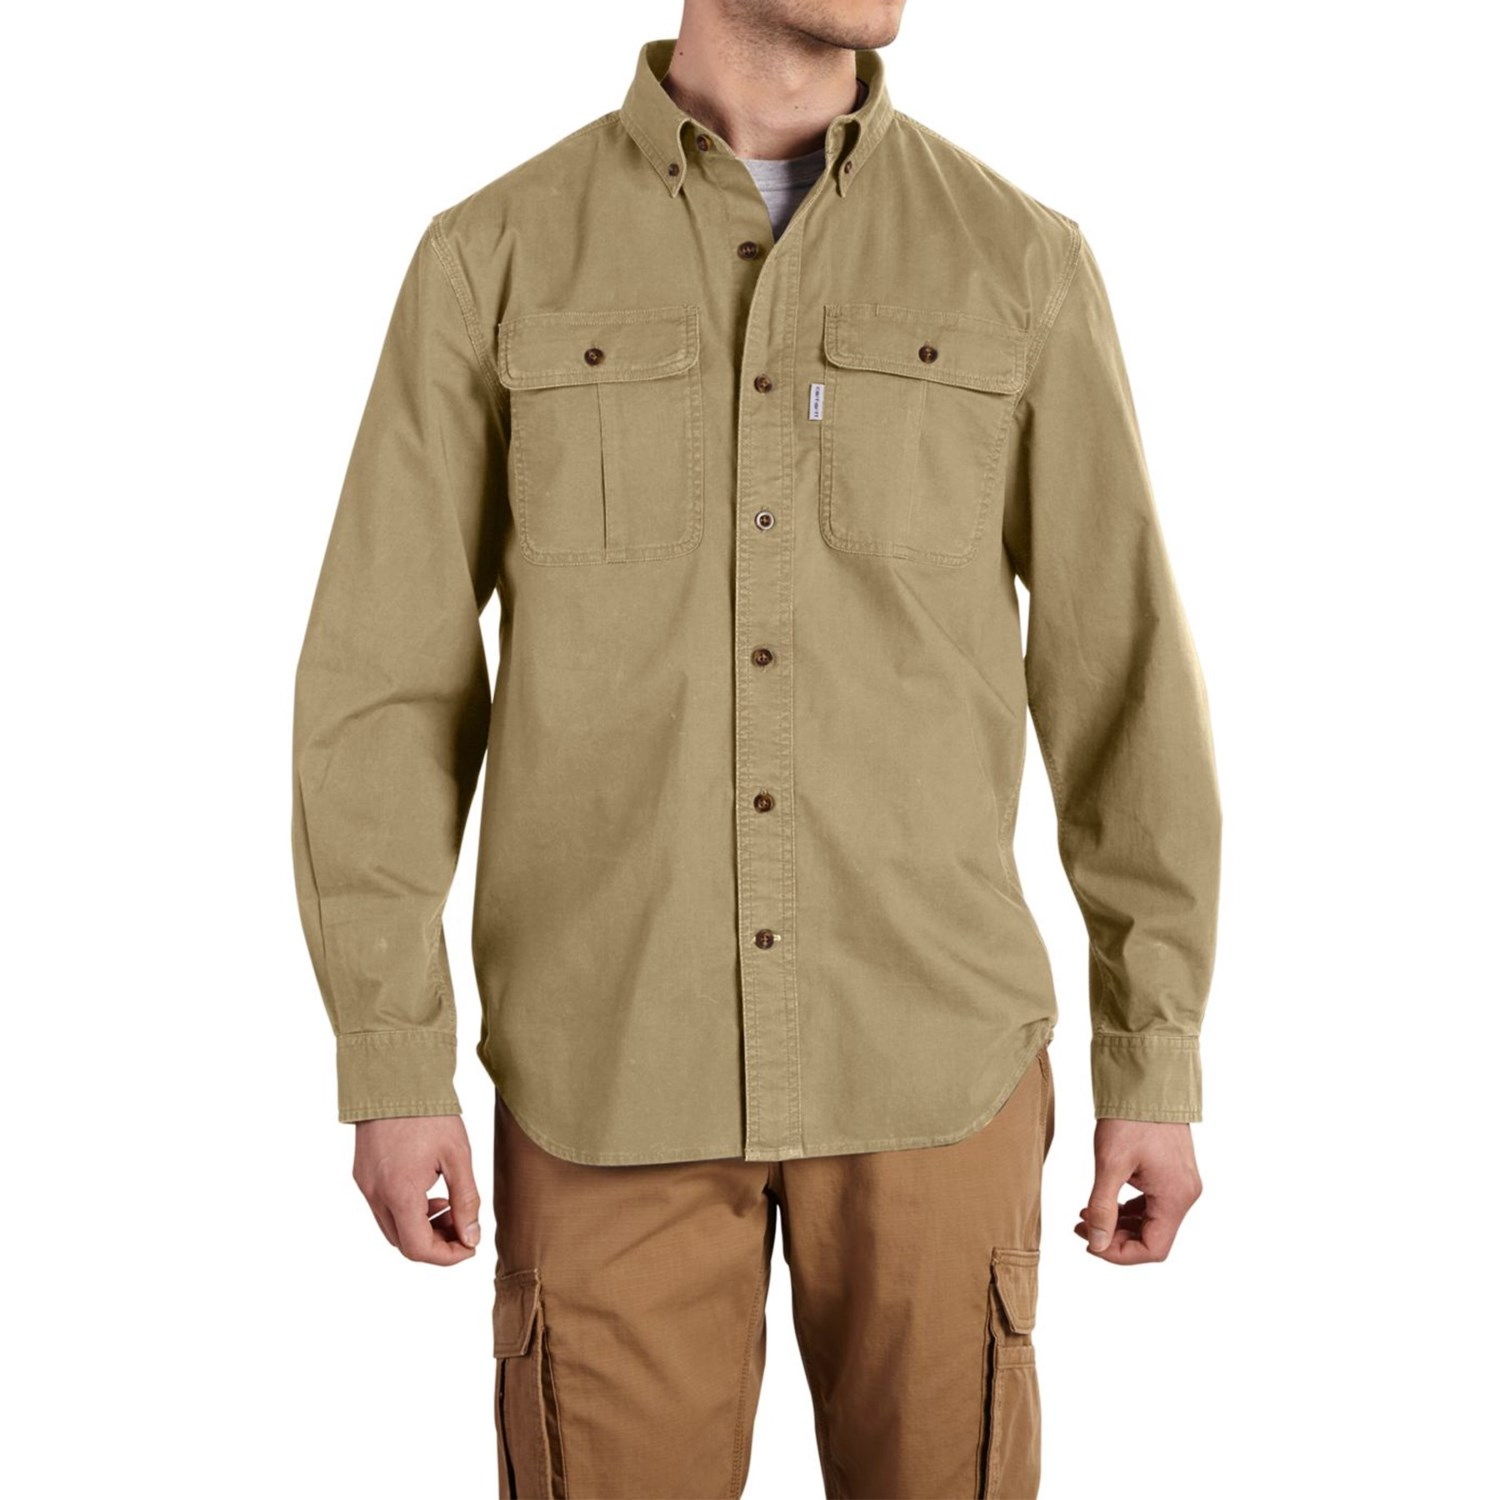 Carhartt Foreman Solid Work Shirt For Big And Tall Men